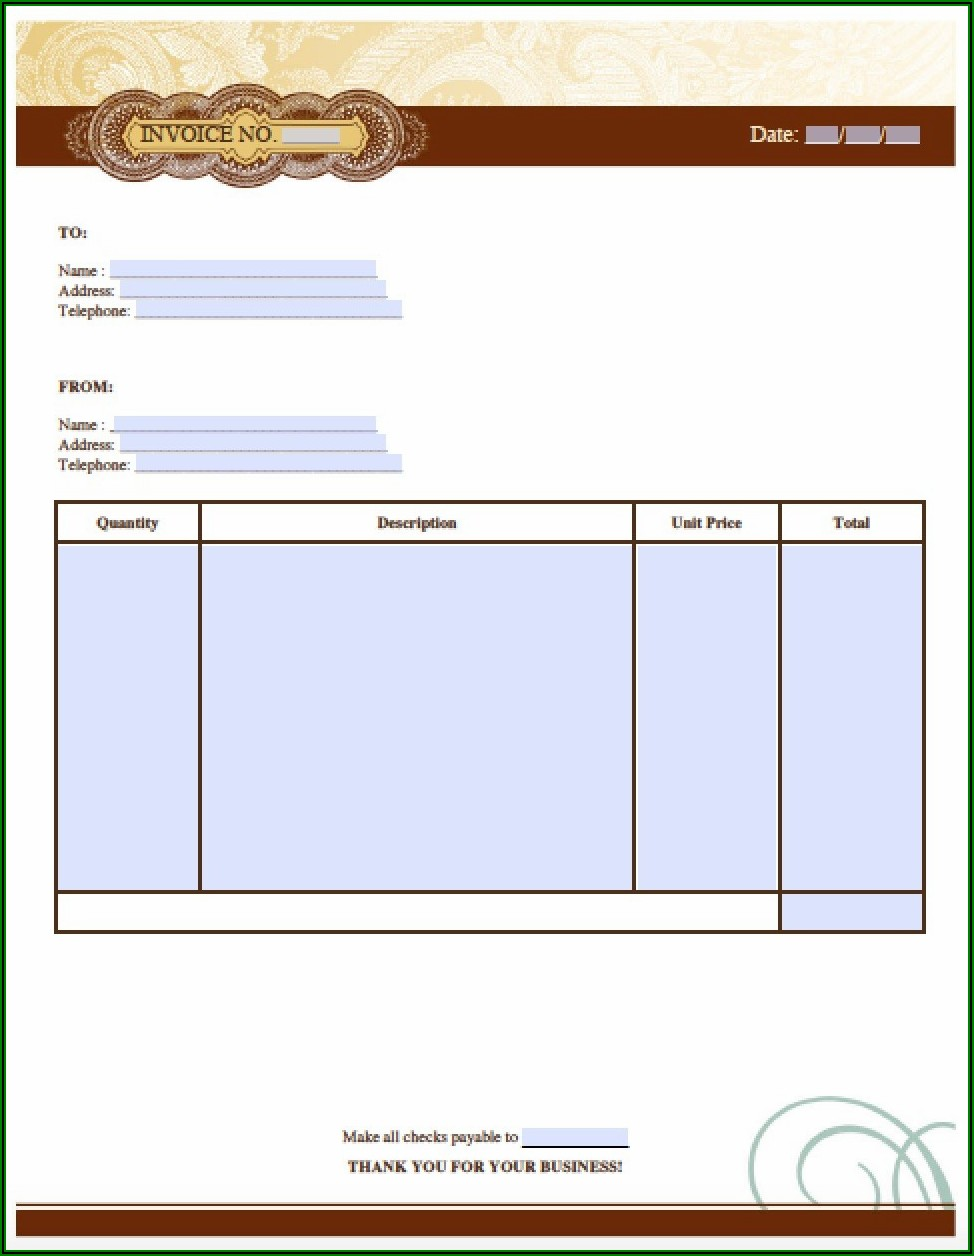 Template Invoice Word Document